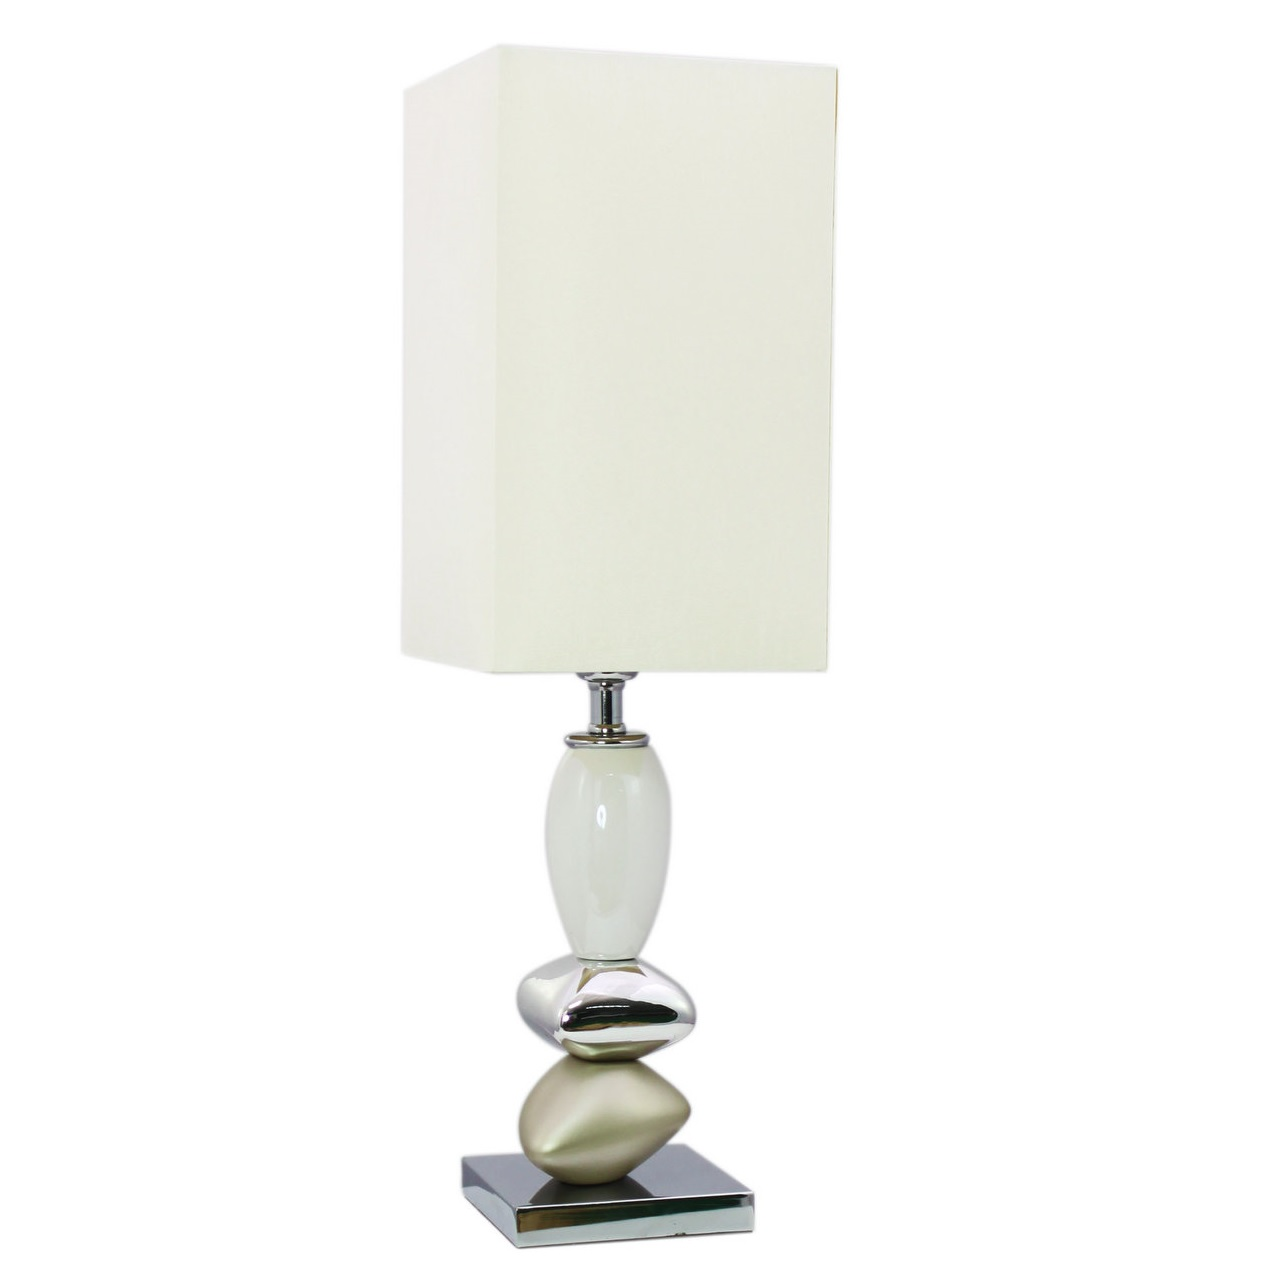 Table lamp champagne chrome pebble table lamp champagne chrome aloadofball Choice Image